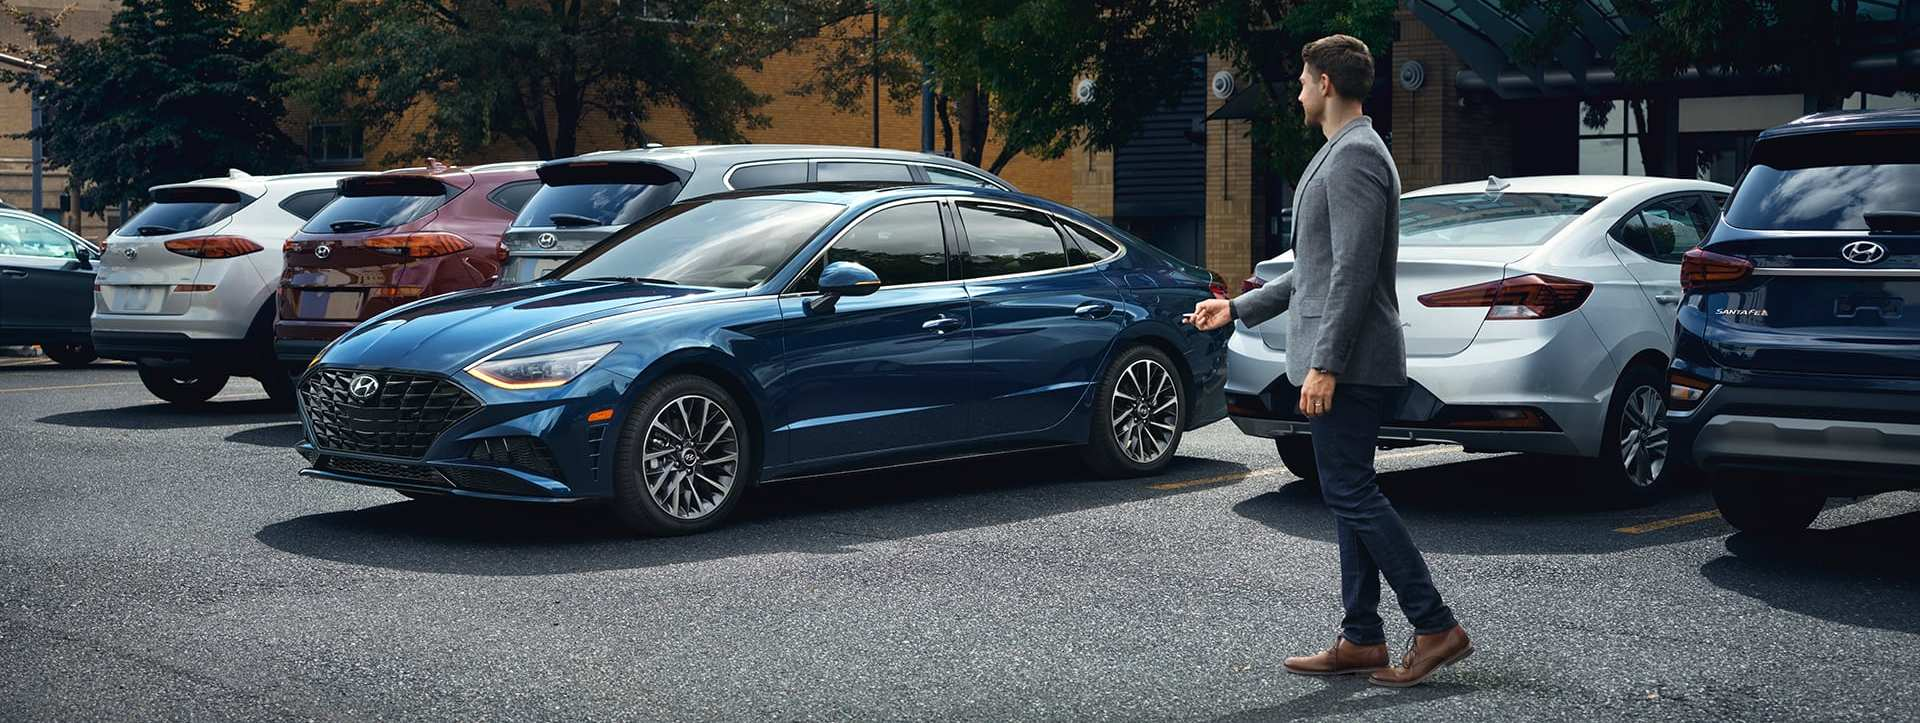 2020 Hyundai Sonata Leasing near Washington, DC